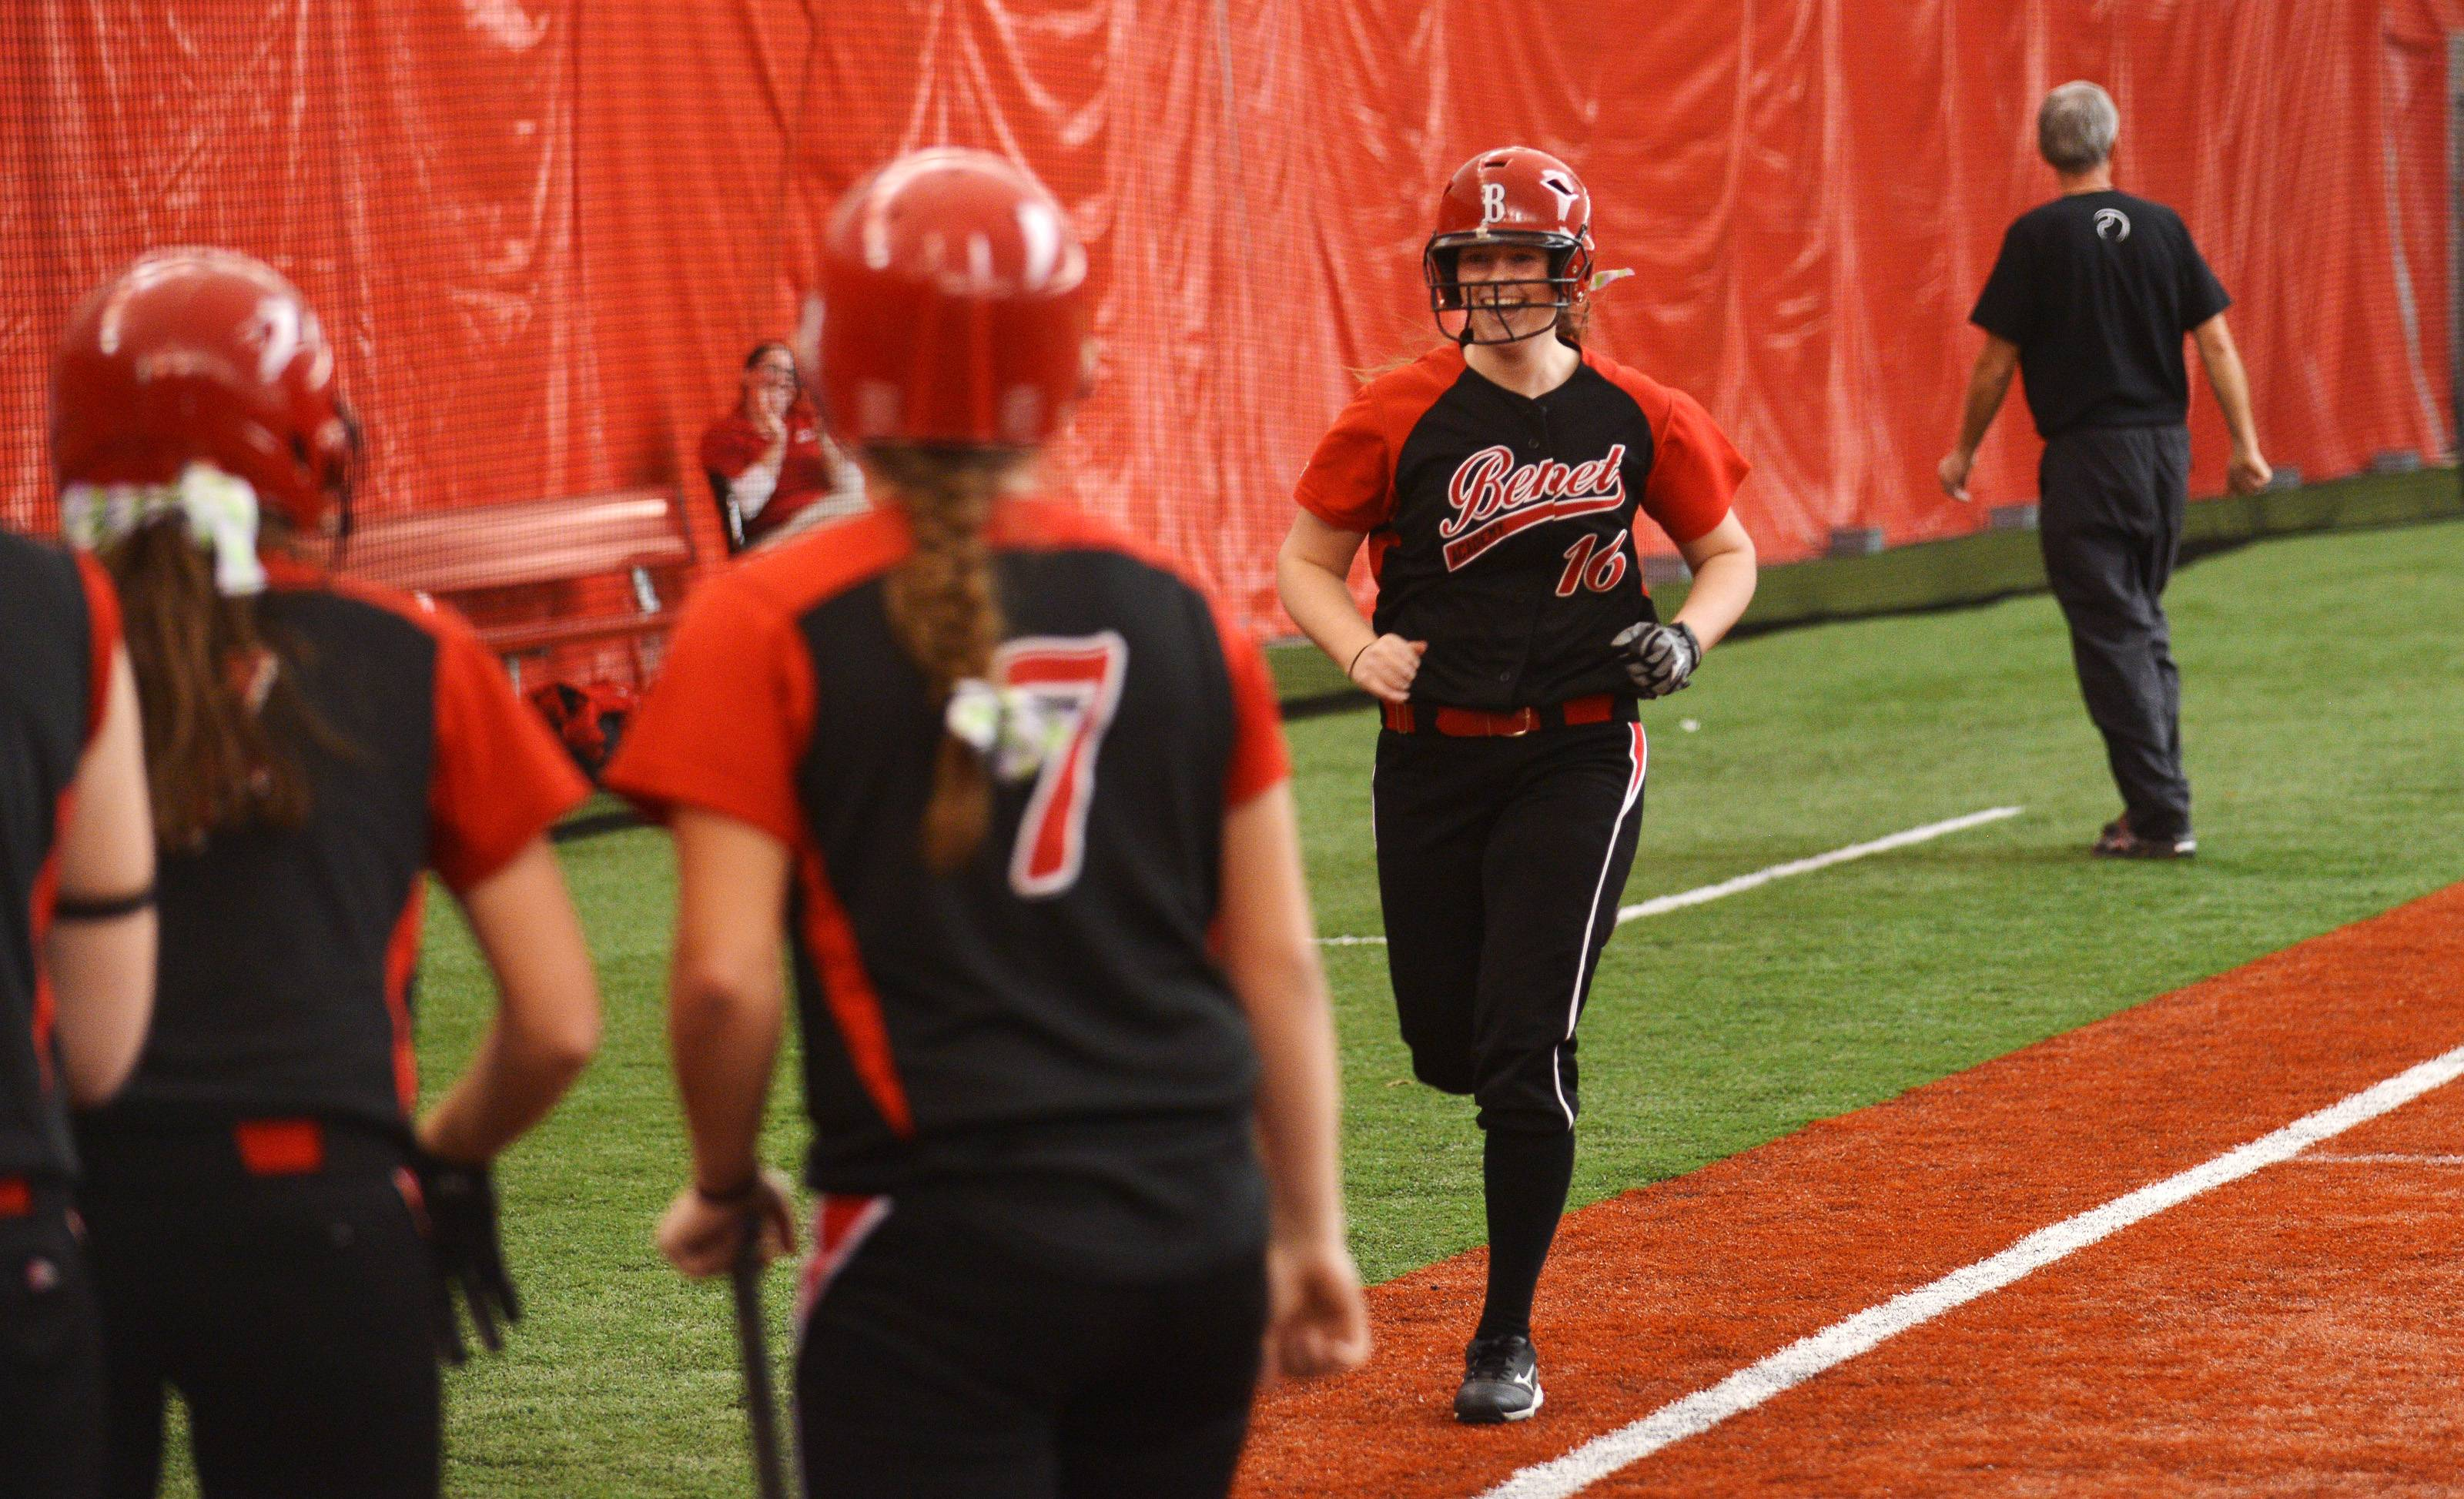 Benet played Neuqua Valley Monday, March 31 in indoor softball action in Rosemont. Benet's Julianne Rurka is all smiles as she trots to home after hitting a two-run homer to left field in the bottom of the 4th inning. That put Benet up by 1 run.